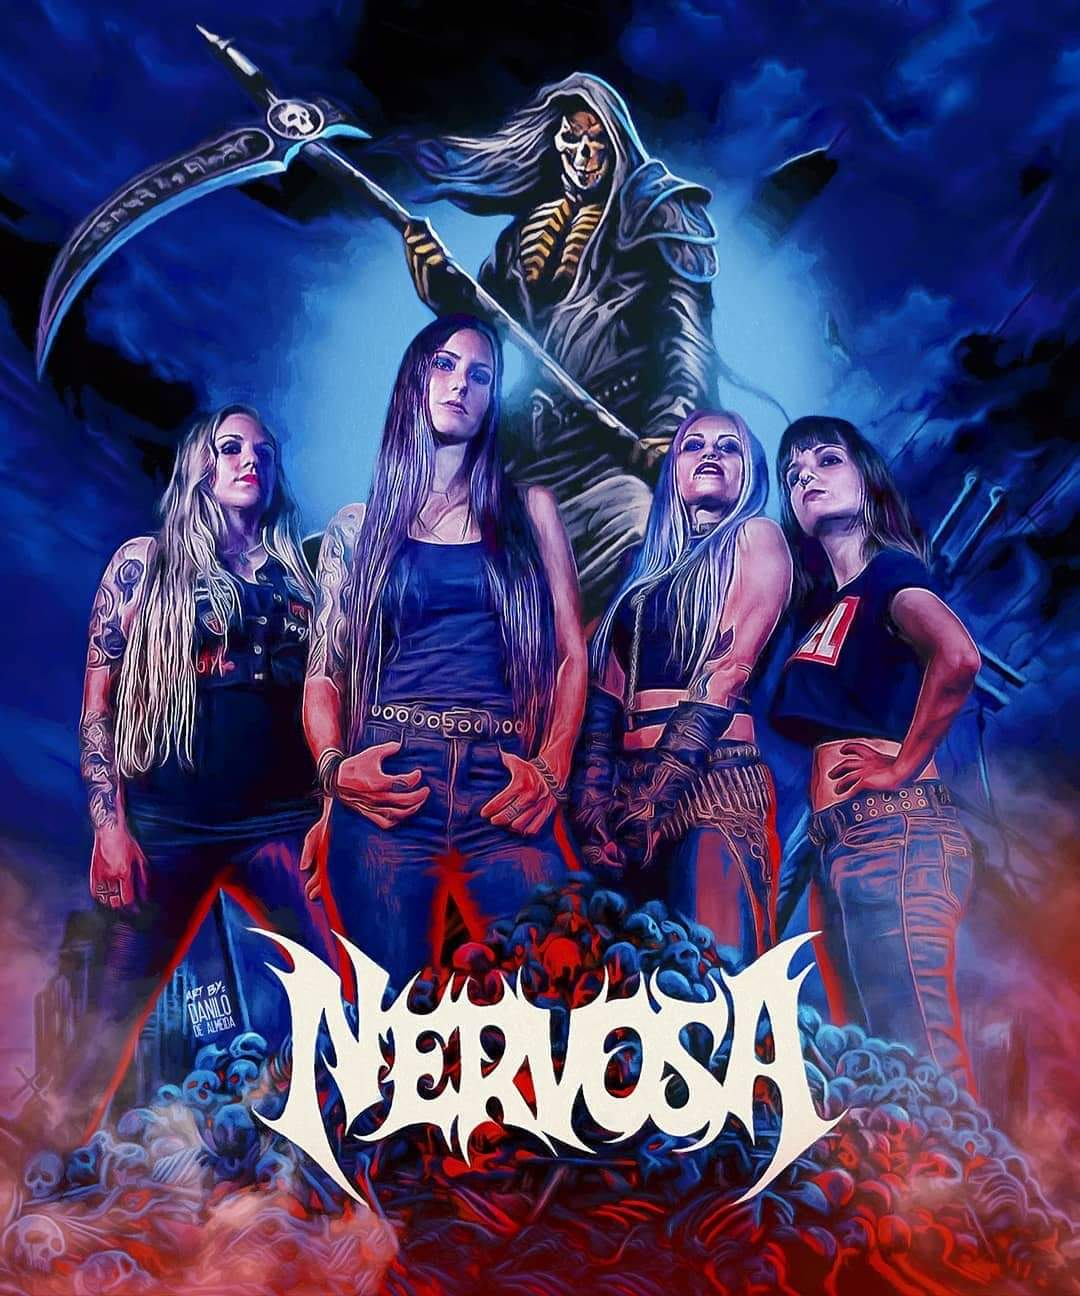 nervosa-perpetual-chaos-2021-album-of-the-year